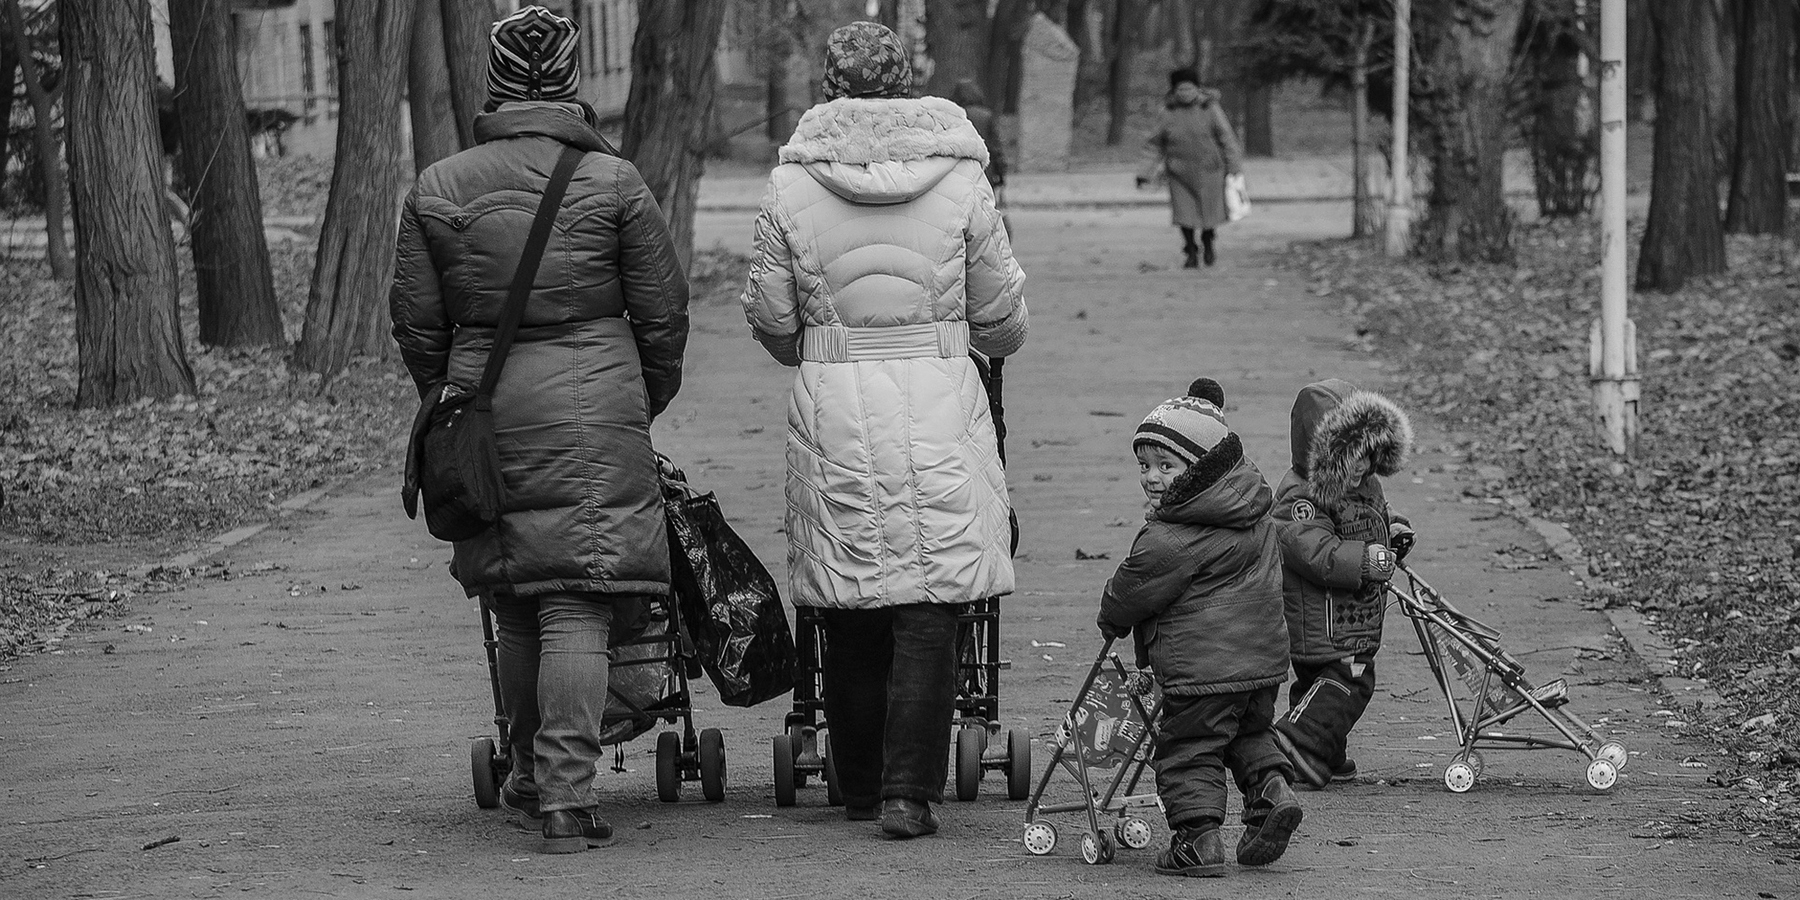 Walking with pushchairs